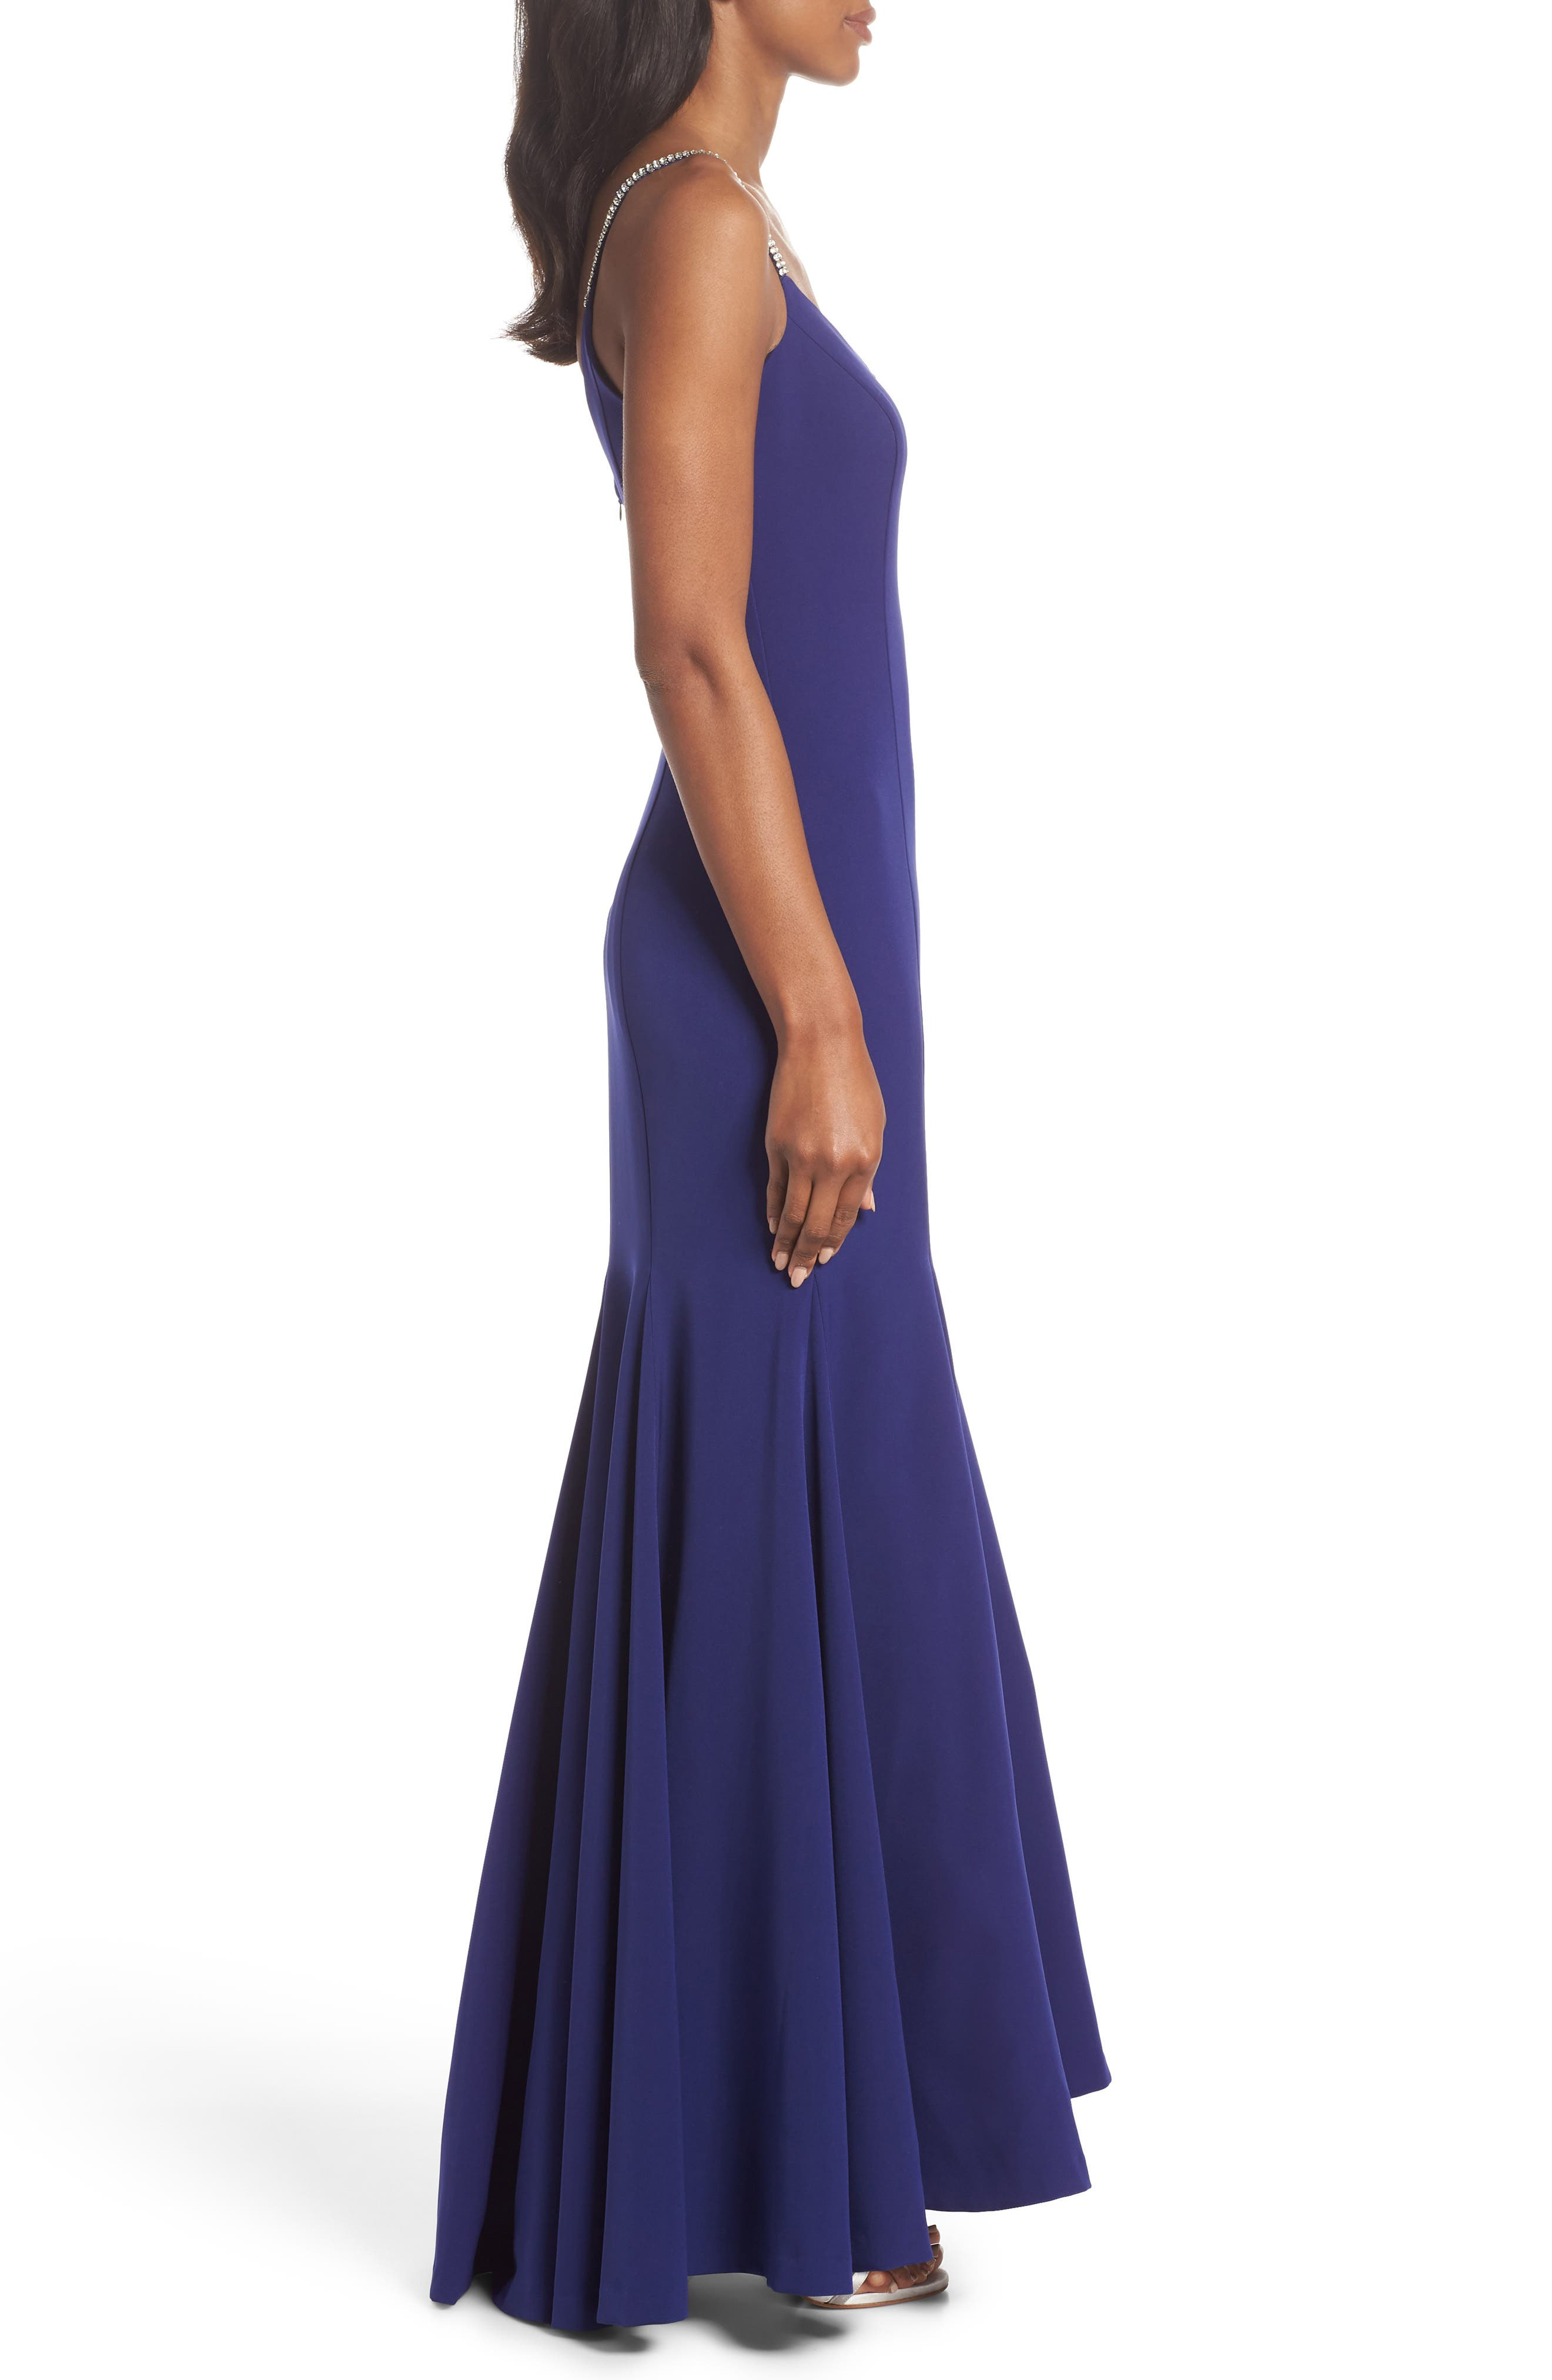 VINCE CAMUTO,                             Laguna Crystal Strap Mermaid Gown,                             Alternate thumbnail 4, color,                             430